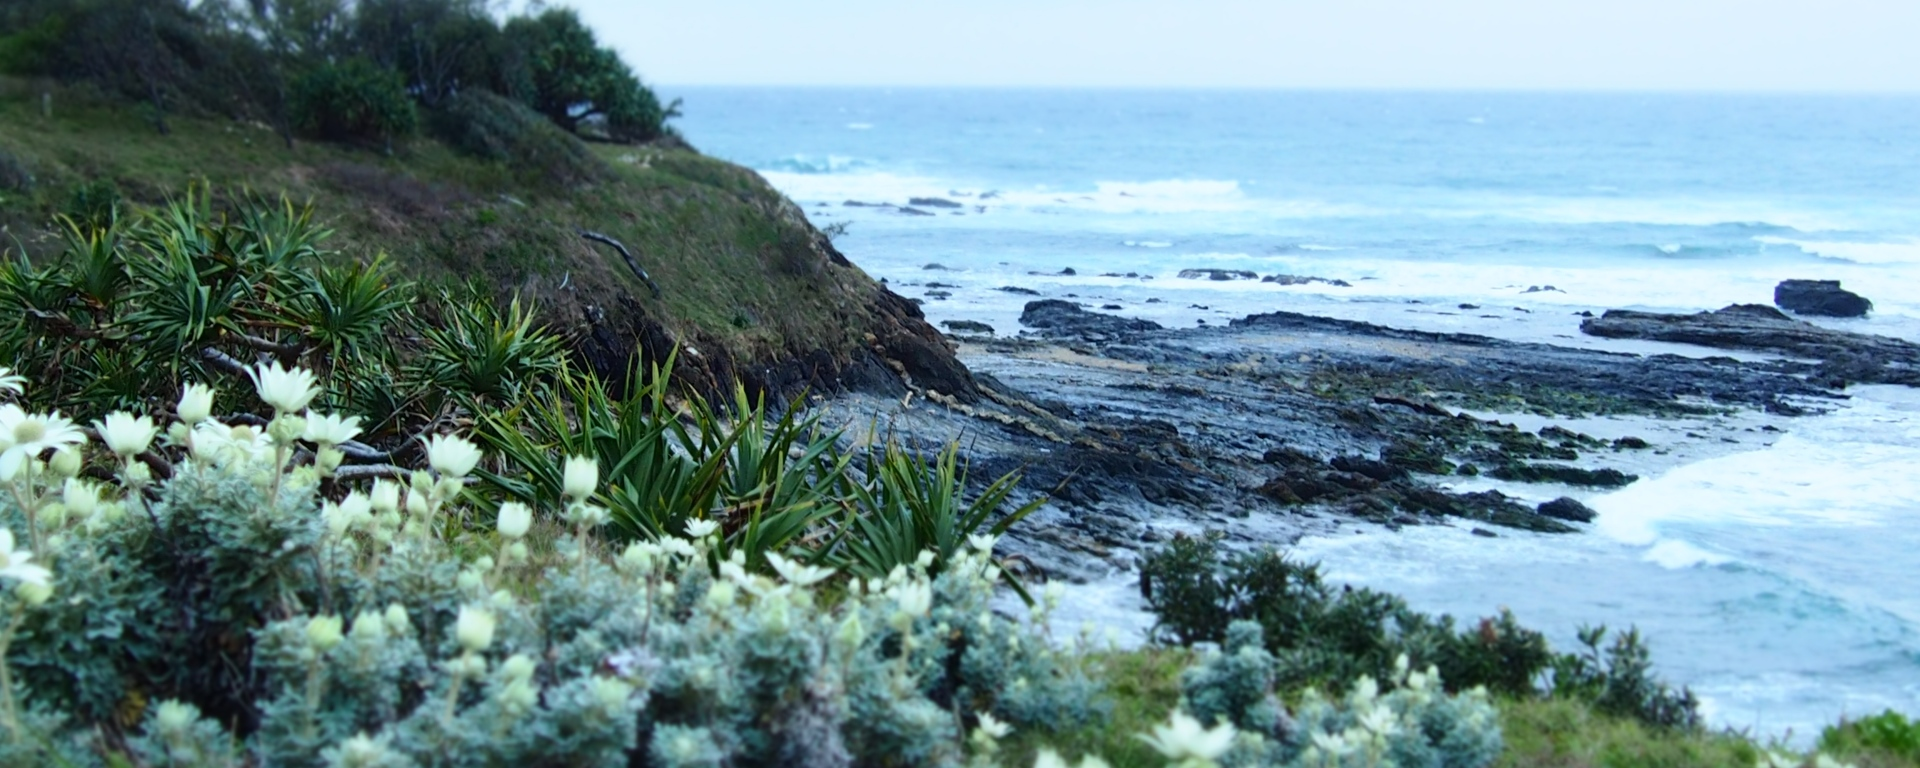 Beach and rock pools right in front of the house, Minnie Water